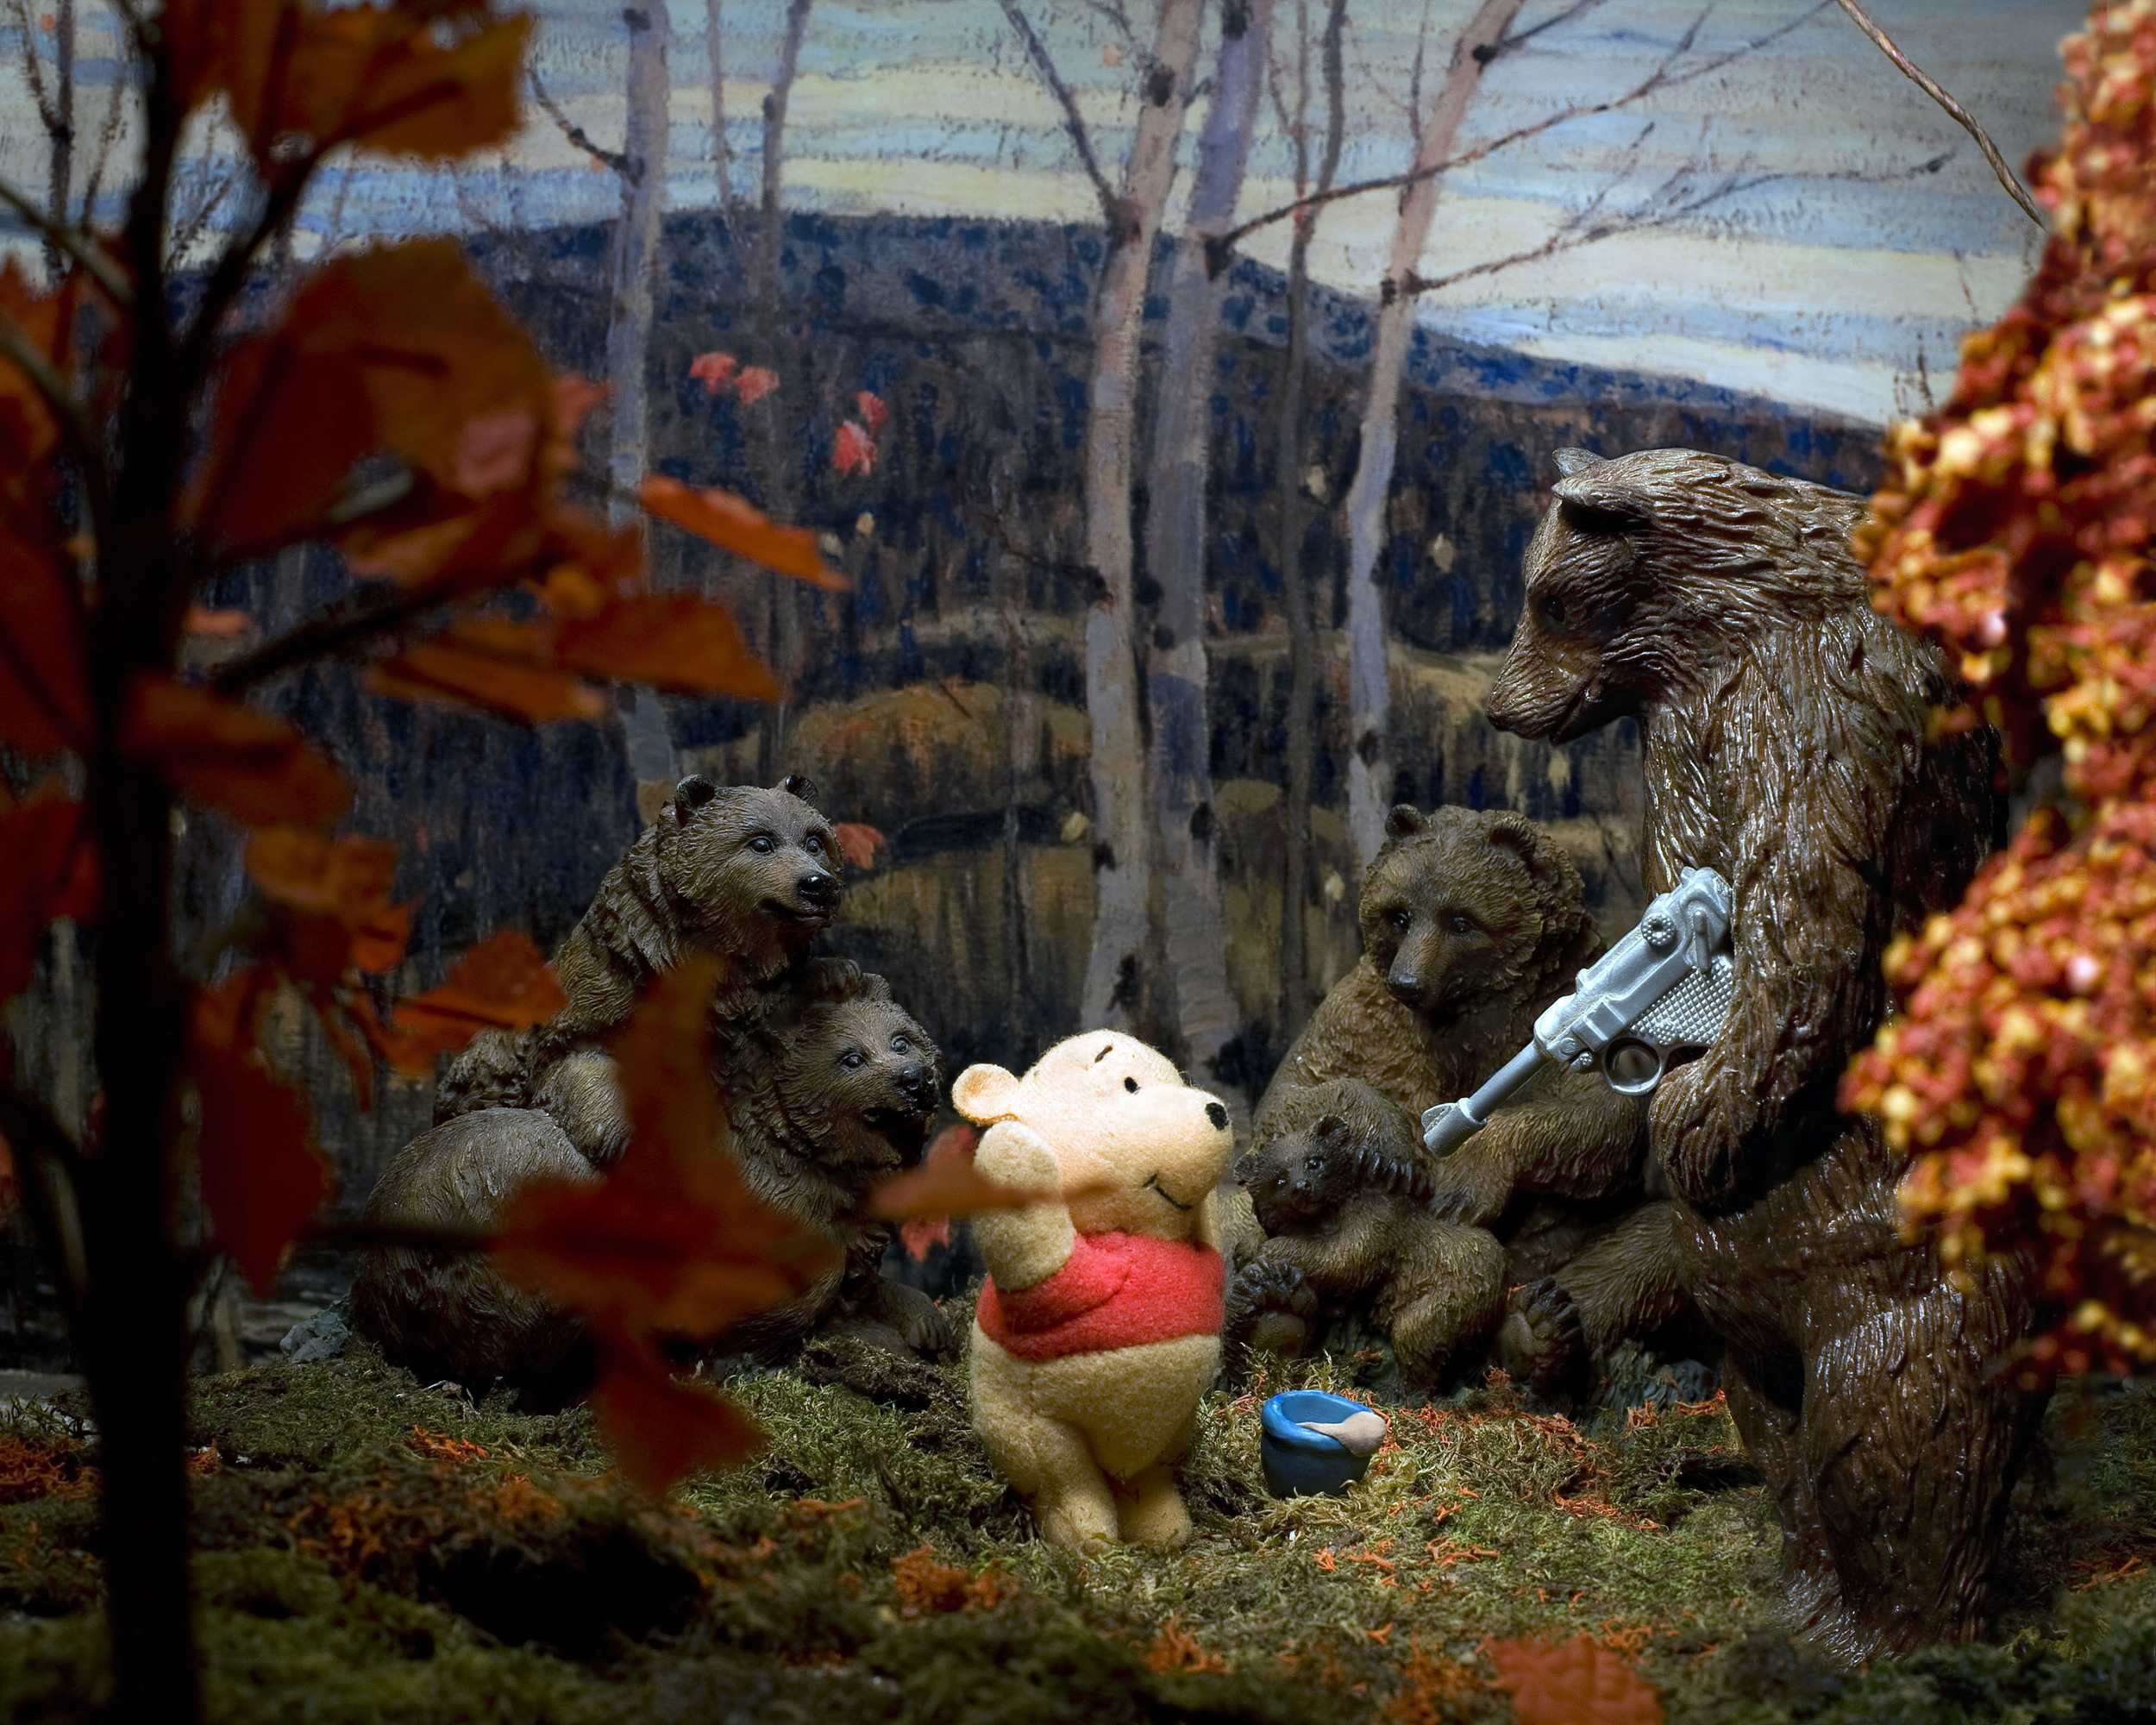 Group of Seven Awkward Moments (Maples and Birches with Winnie and the Pooh), digital photograph, 2009. Image courtesy of Diana Thorneycroft.